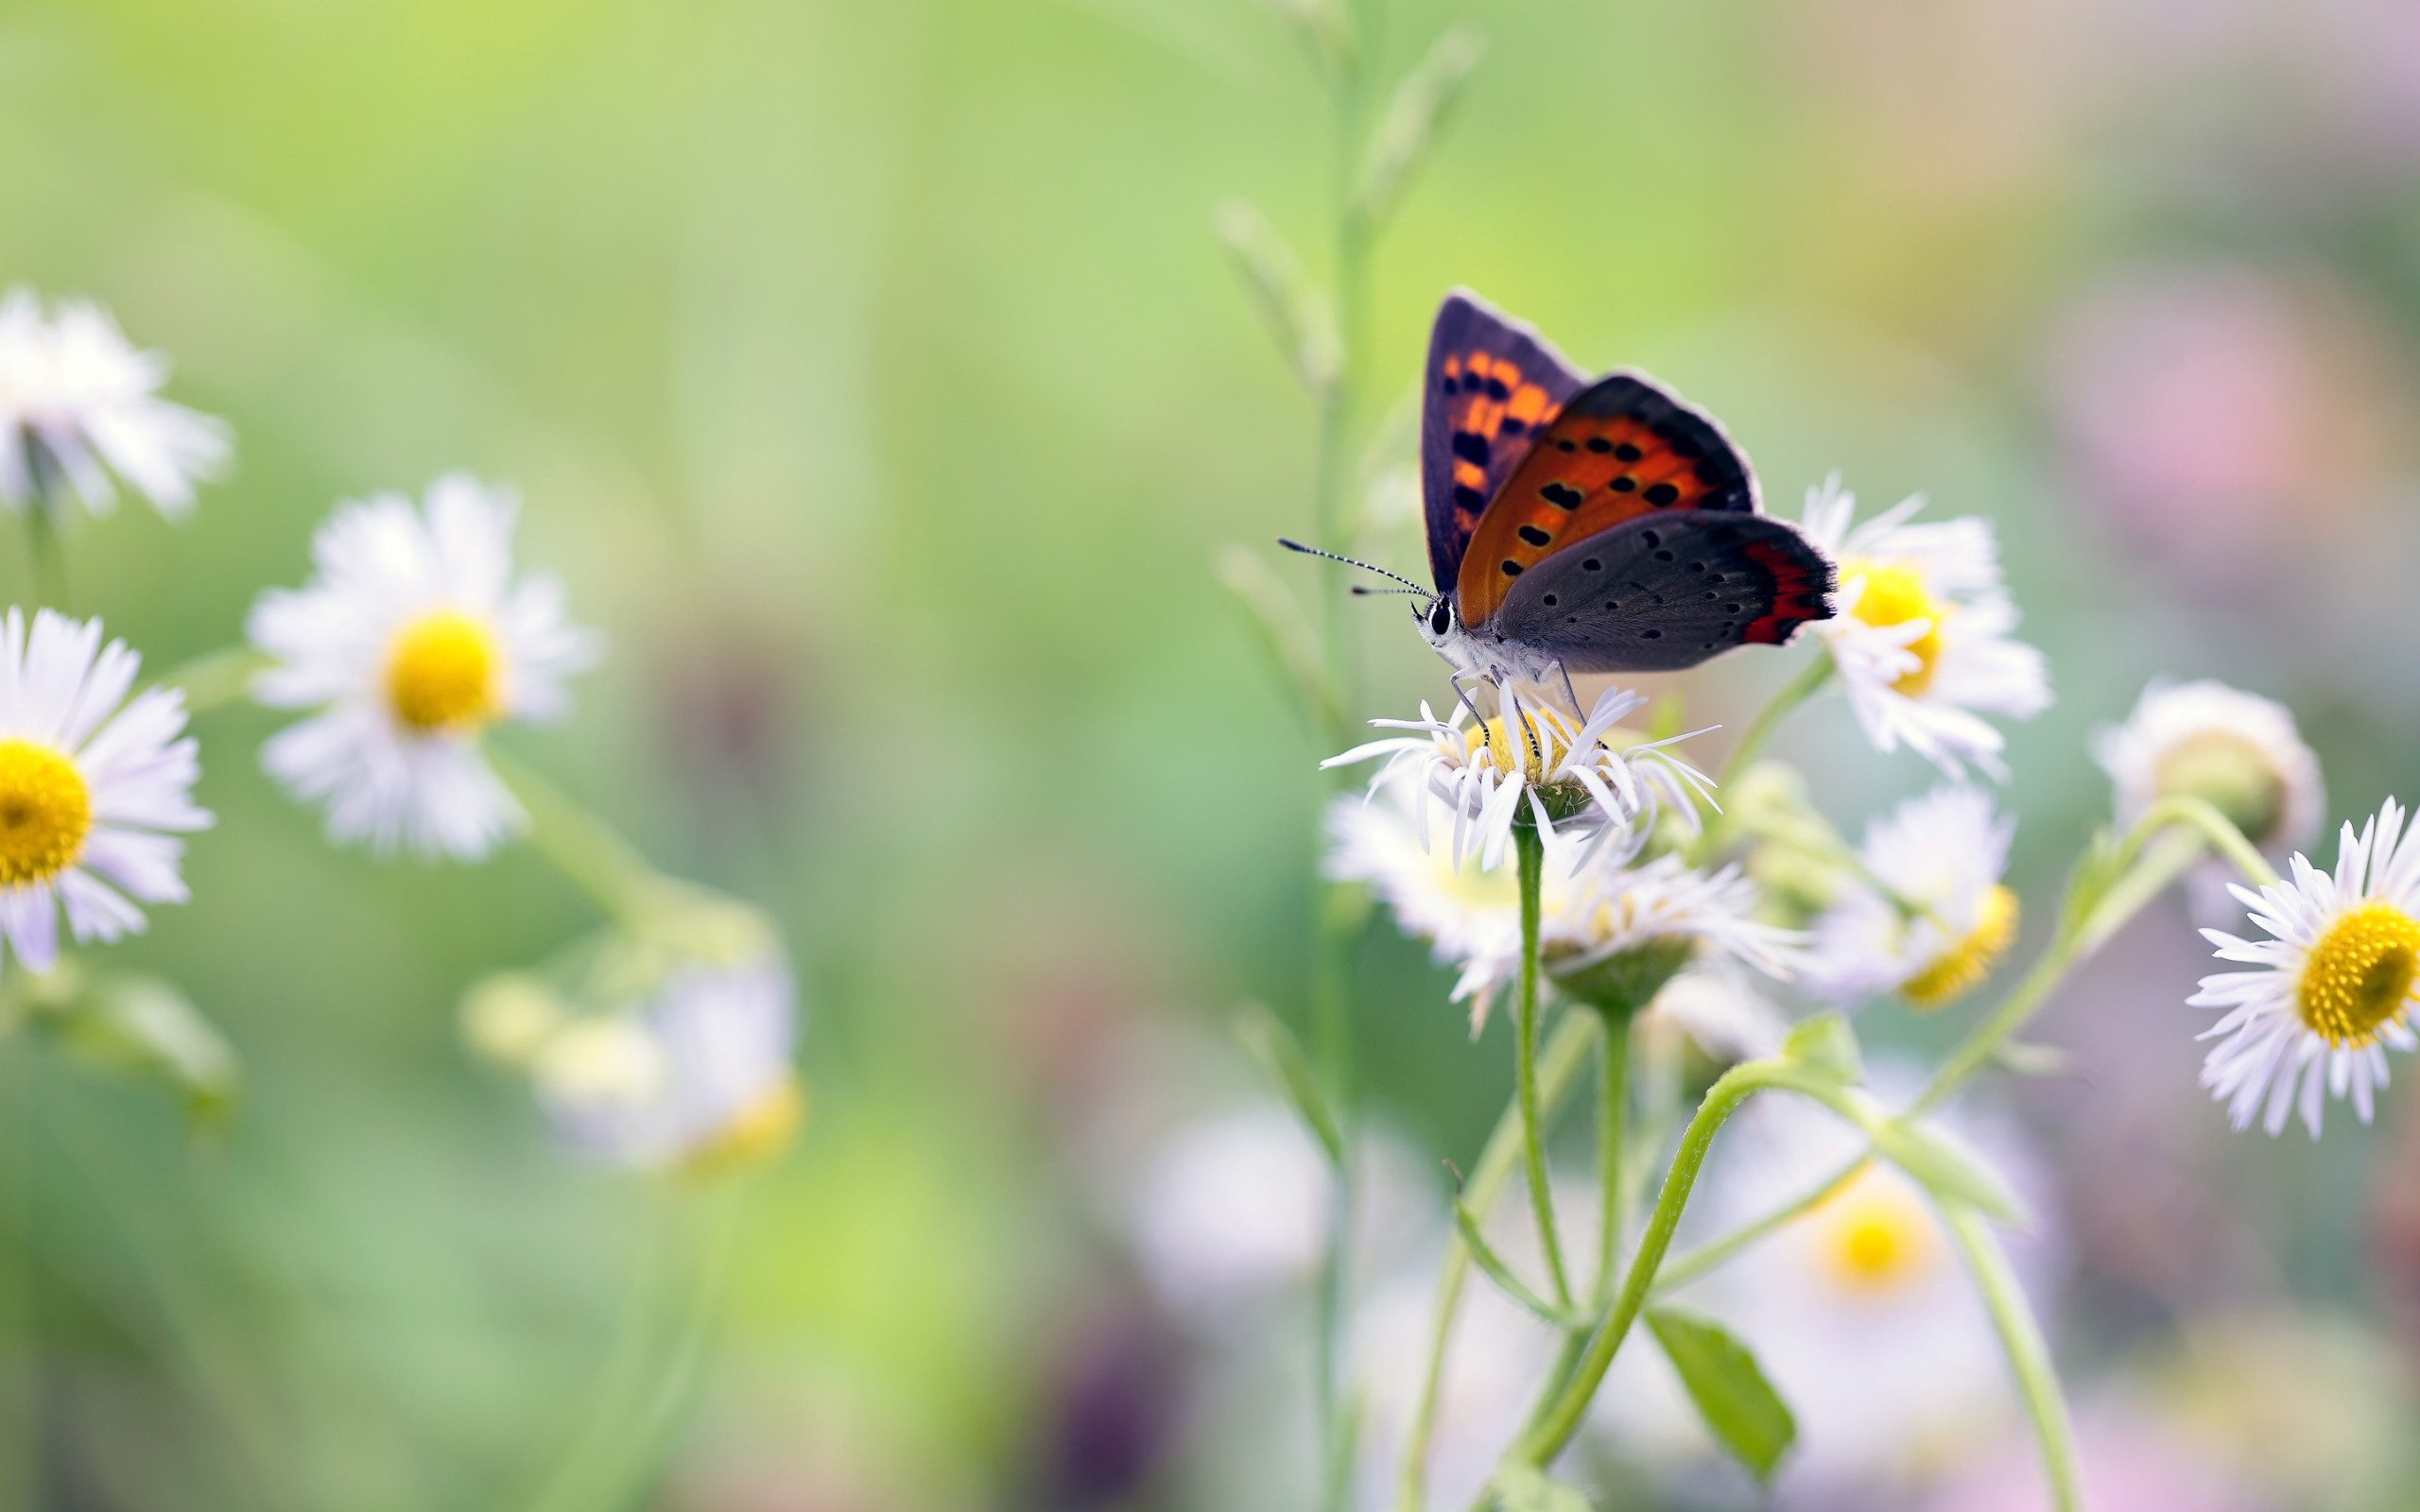 Butterfly Flowers Background - Whatsapp Good Morning Live , HD Wallpaper & Backgrounds